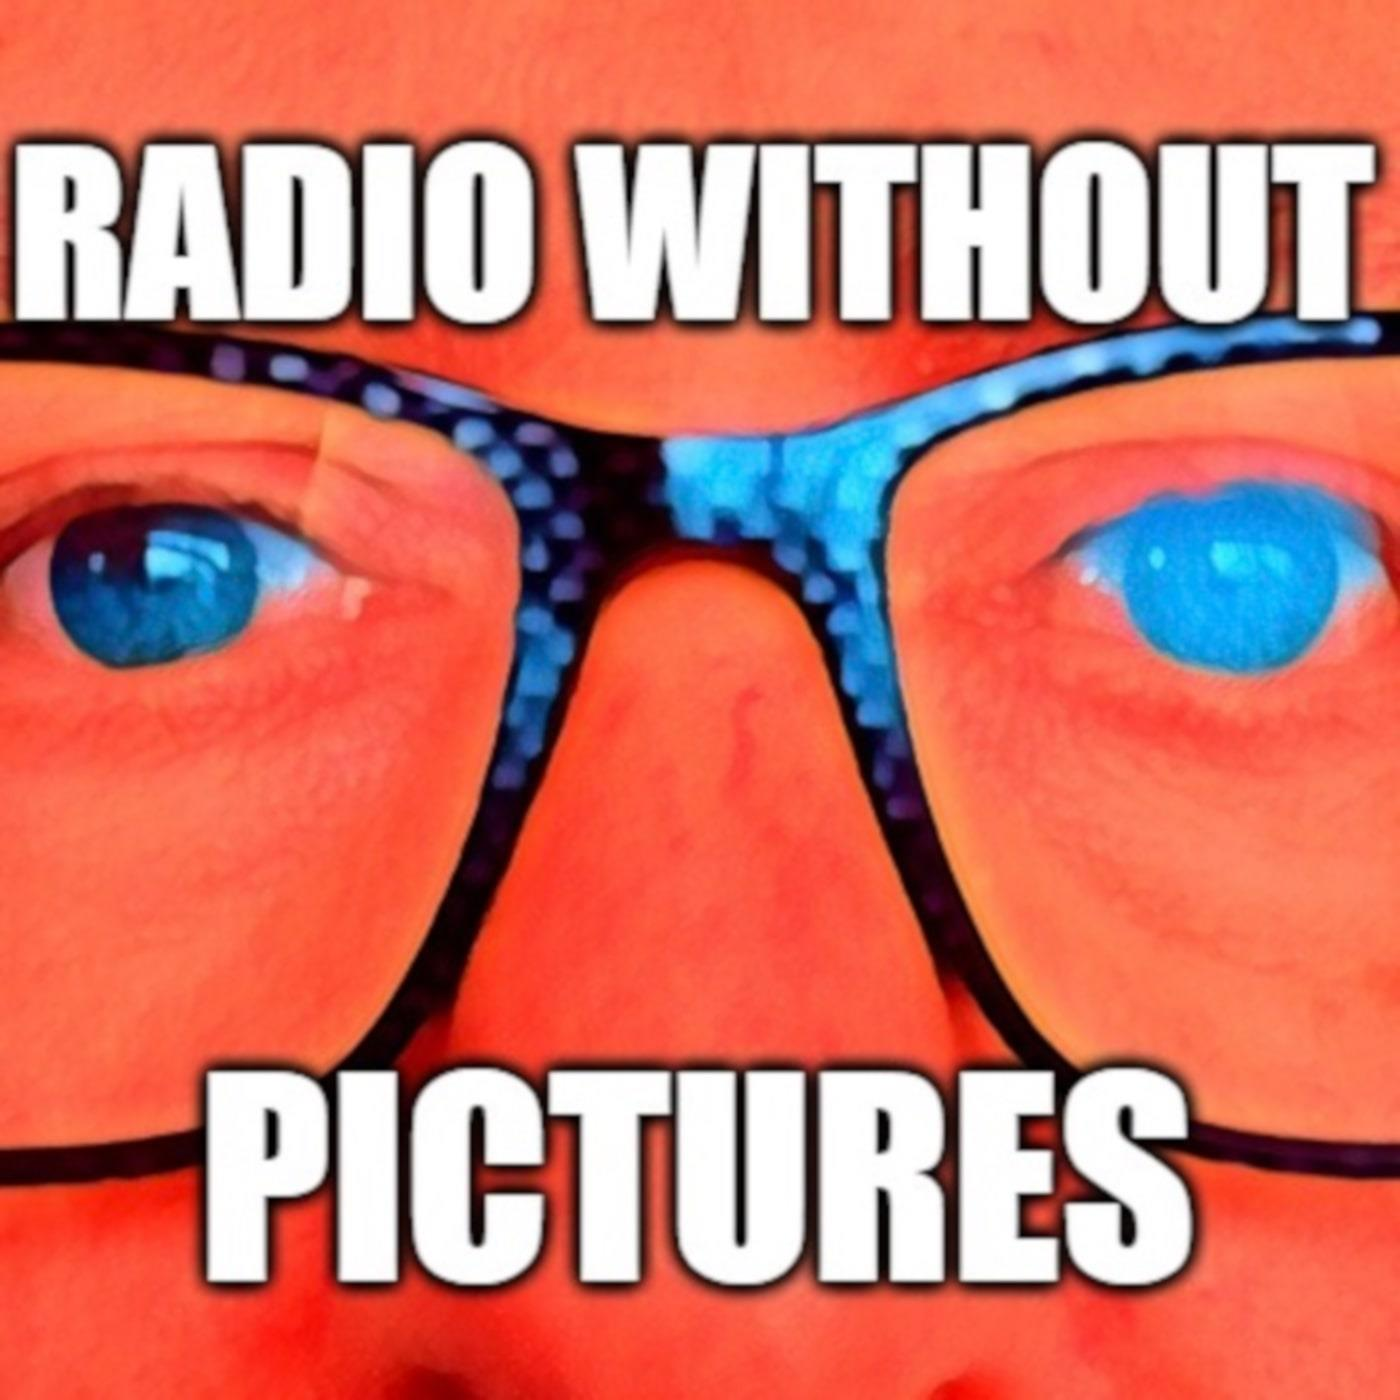 Radio Without Pictures - Darren Ludlow